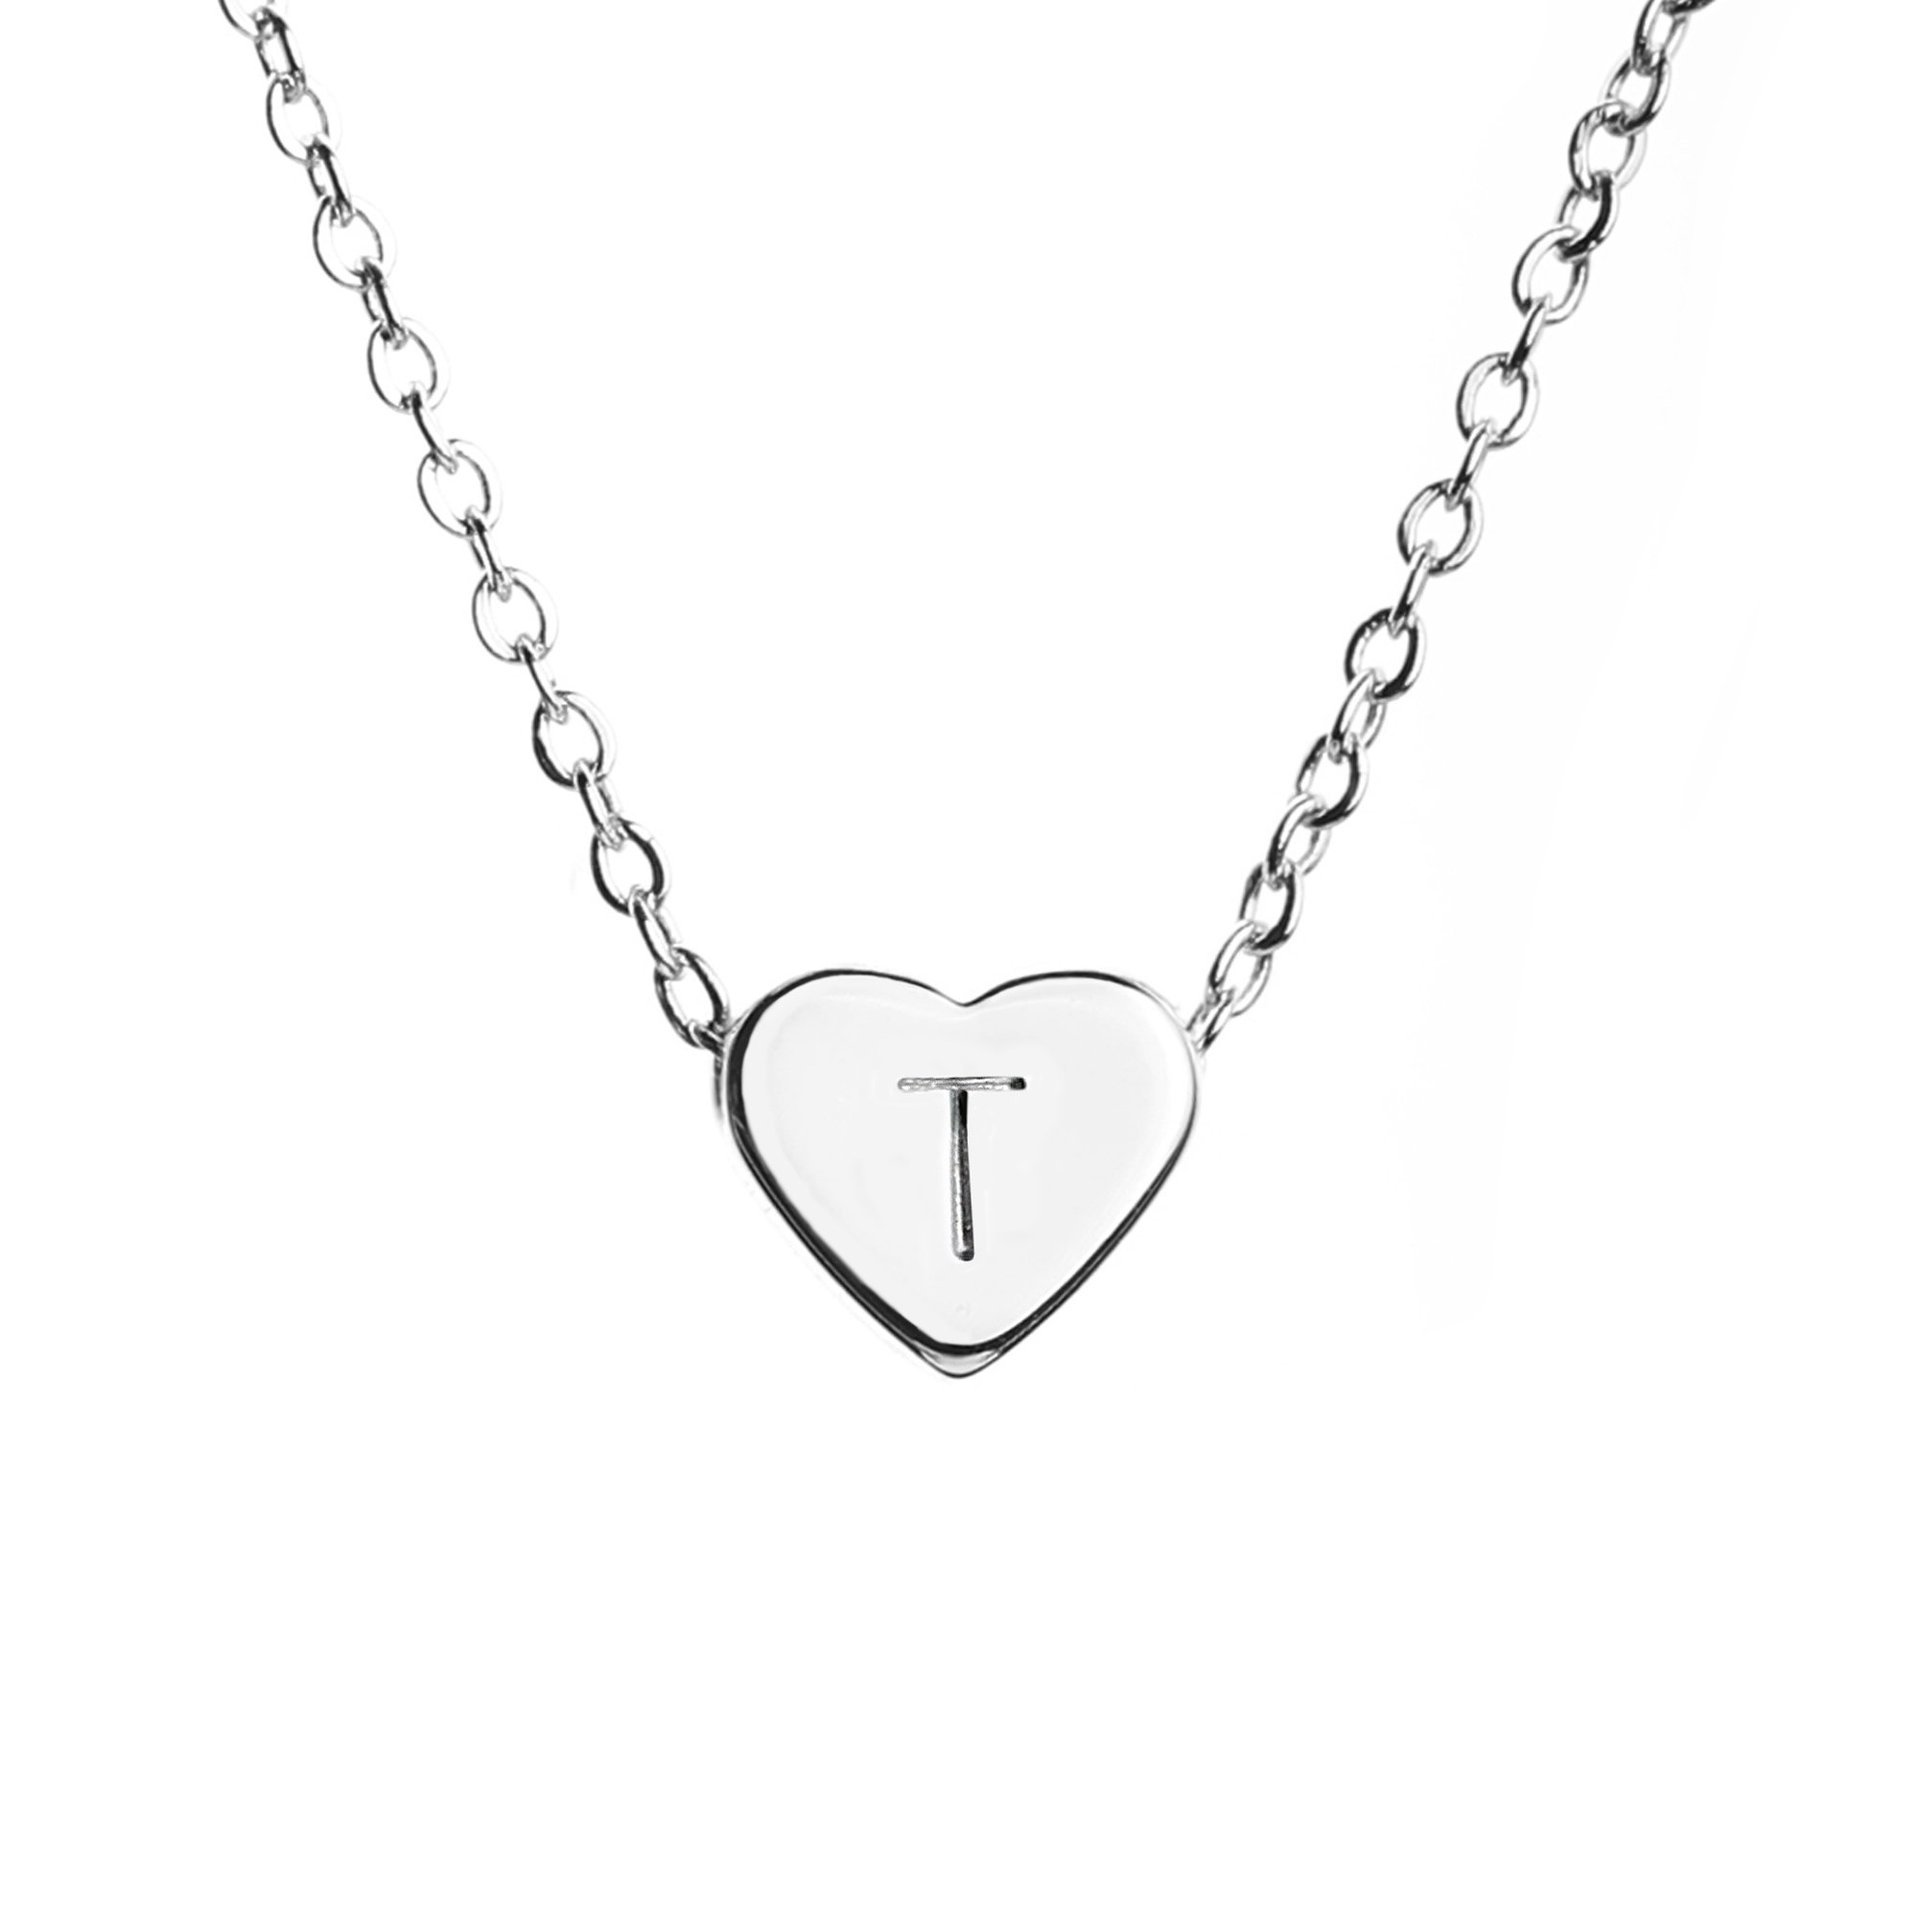 Lutio 925 Sterling Silver Heart Initial Necklace Mother/Father's Gift Birthday's Gift Wedding Gift for her Or him(T)